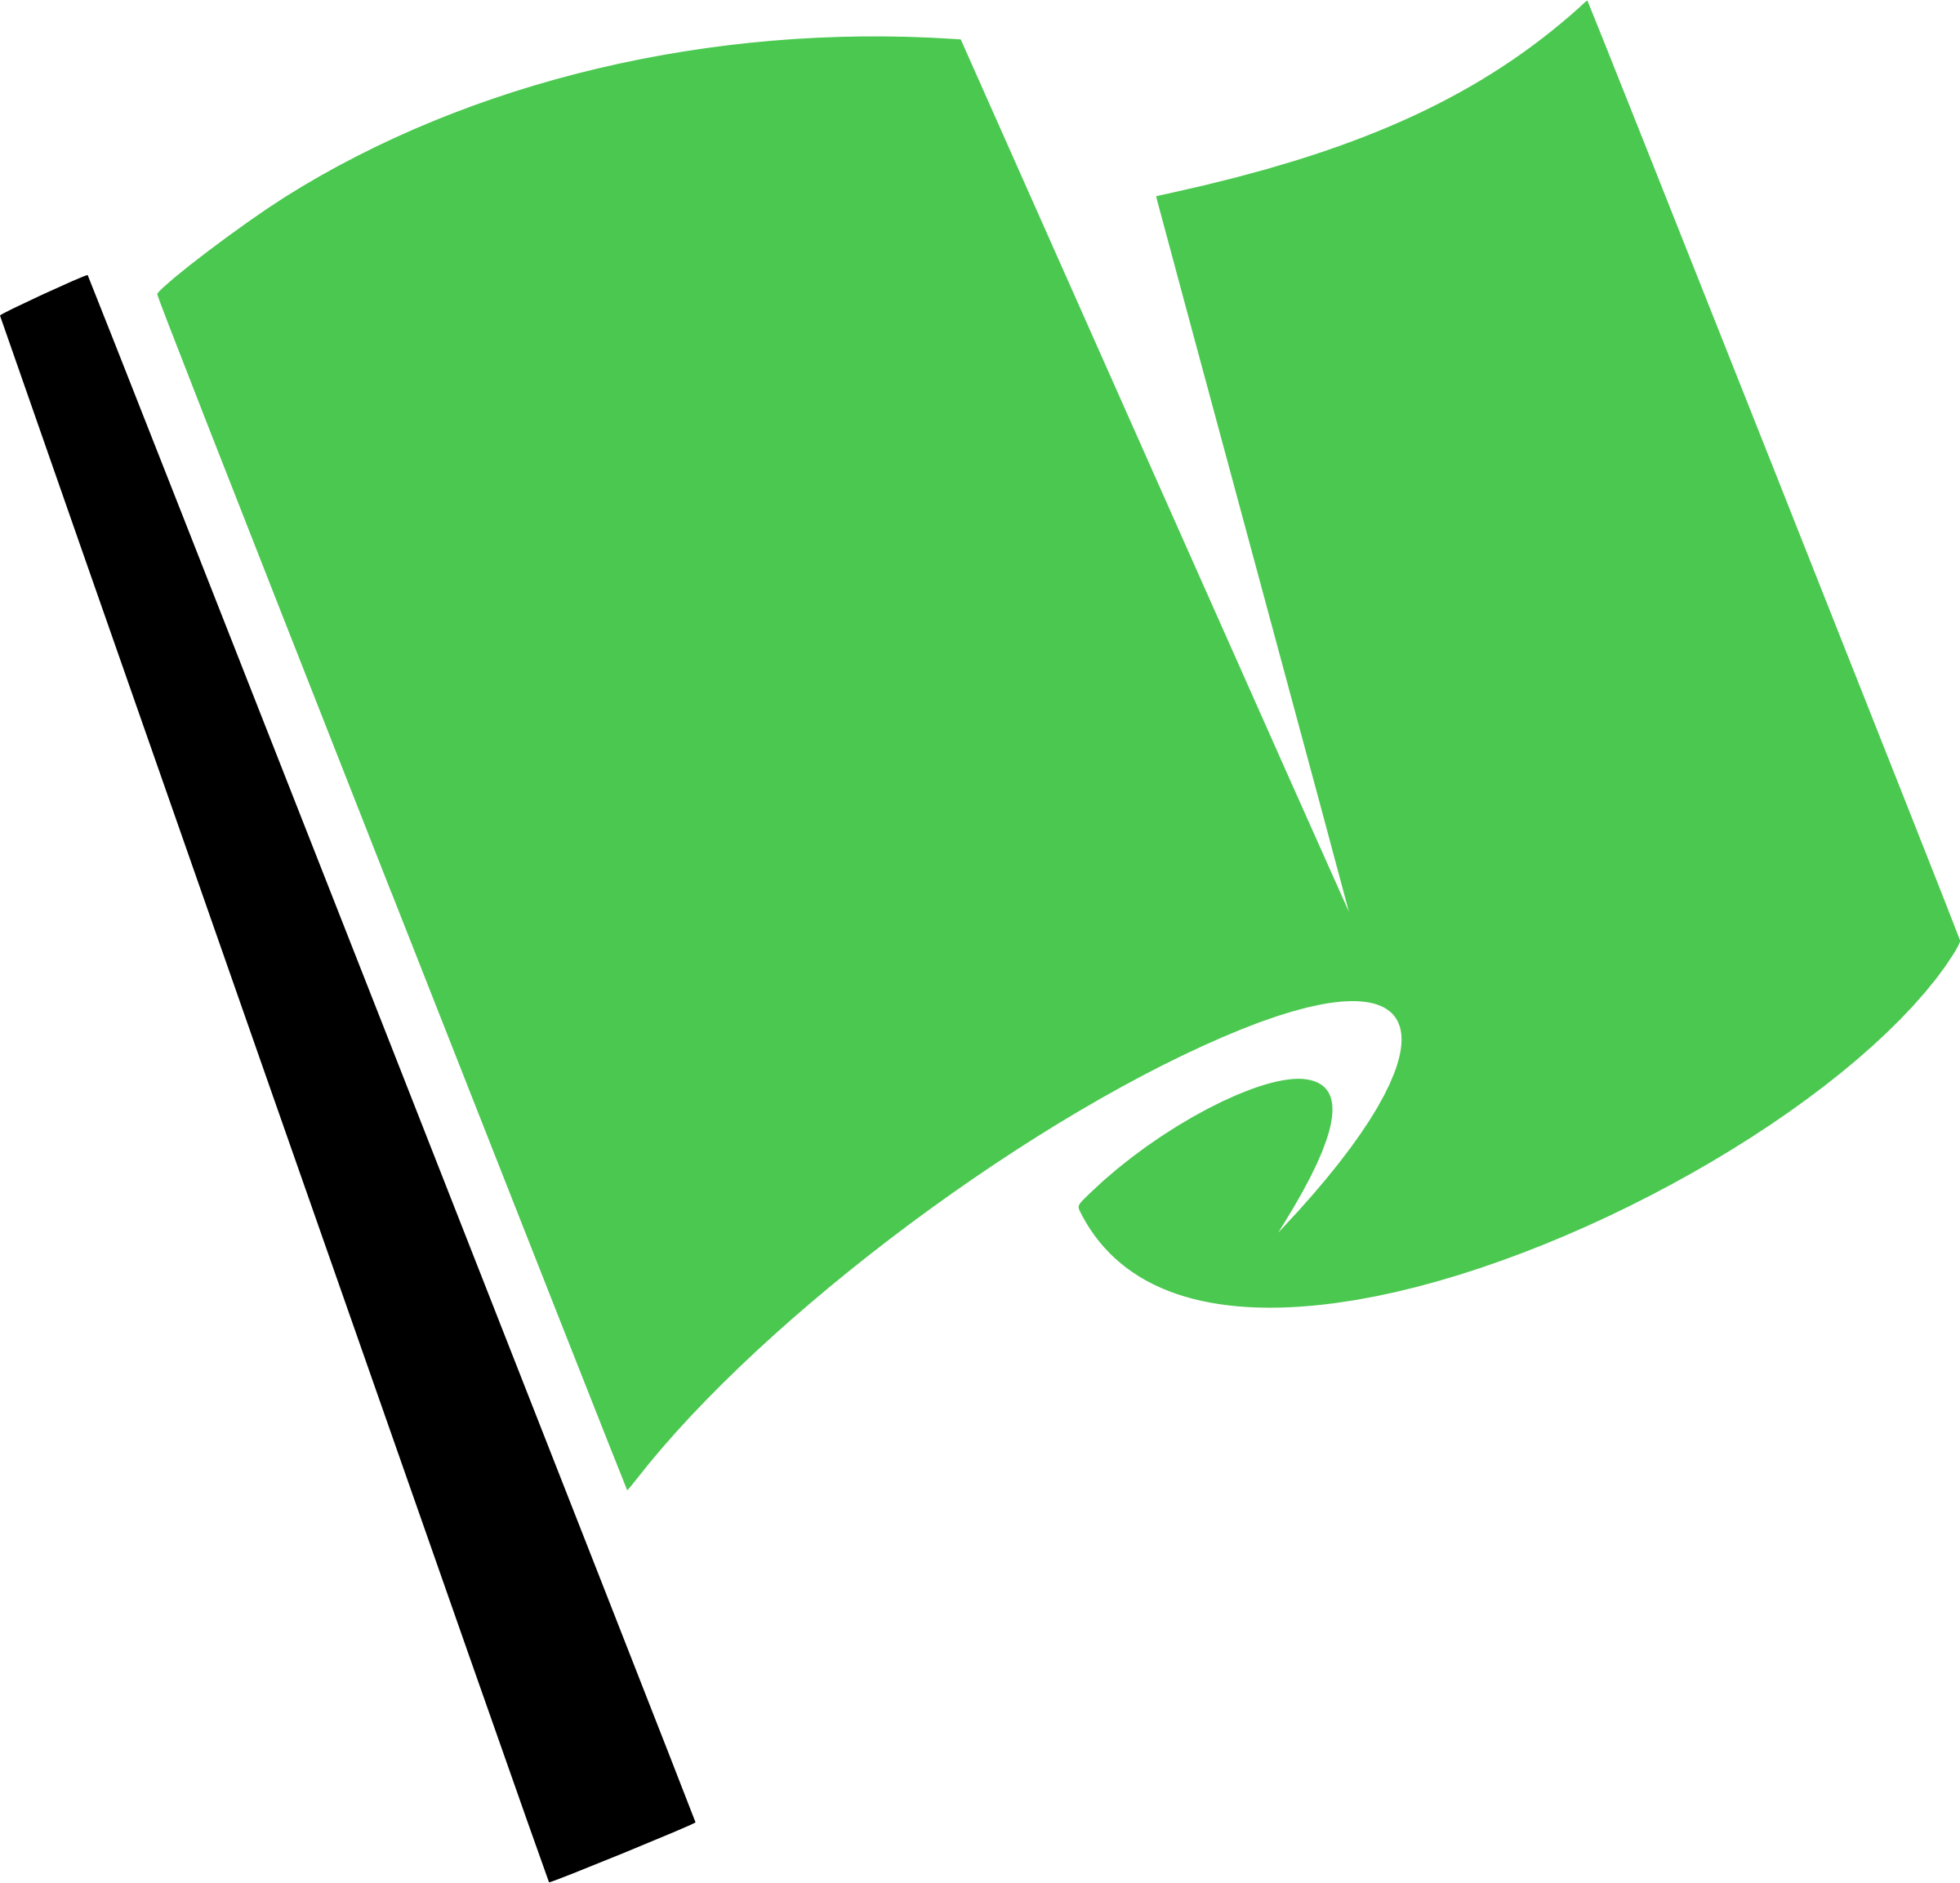 Hirnlichtspiele's green flag vectorized by Firkin